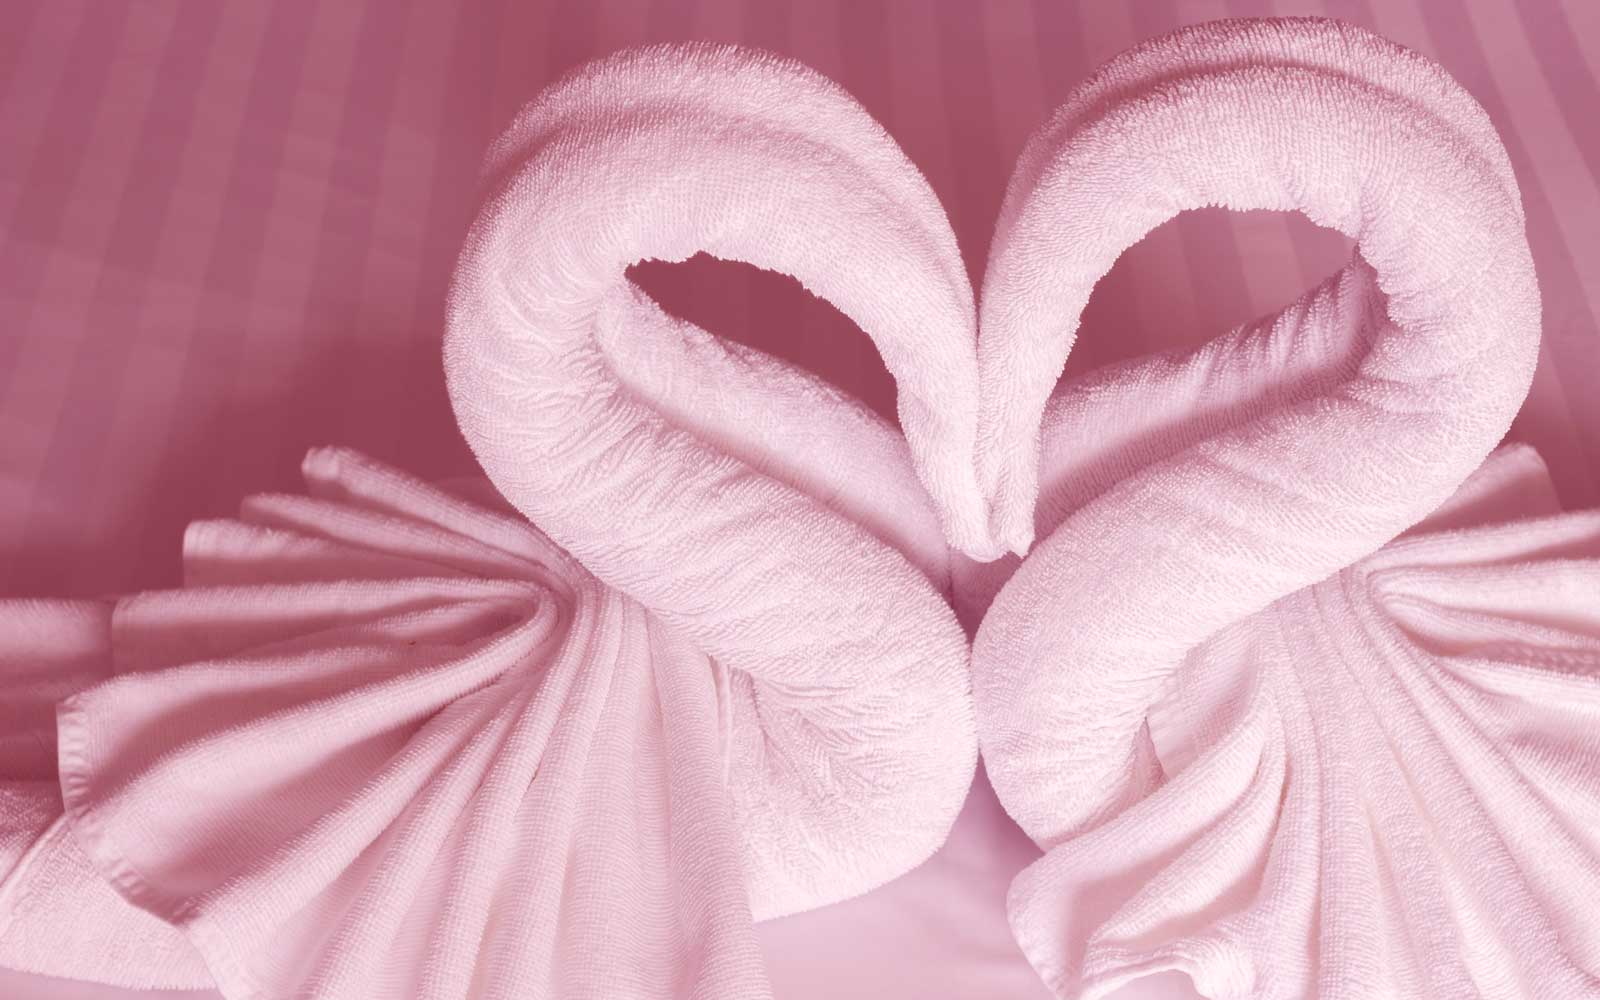 Hotel towels shaped like swans into a heart